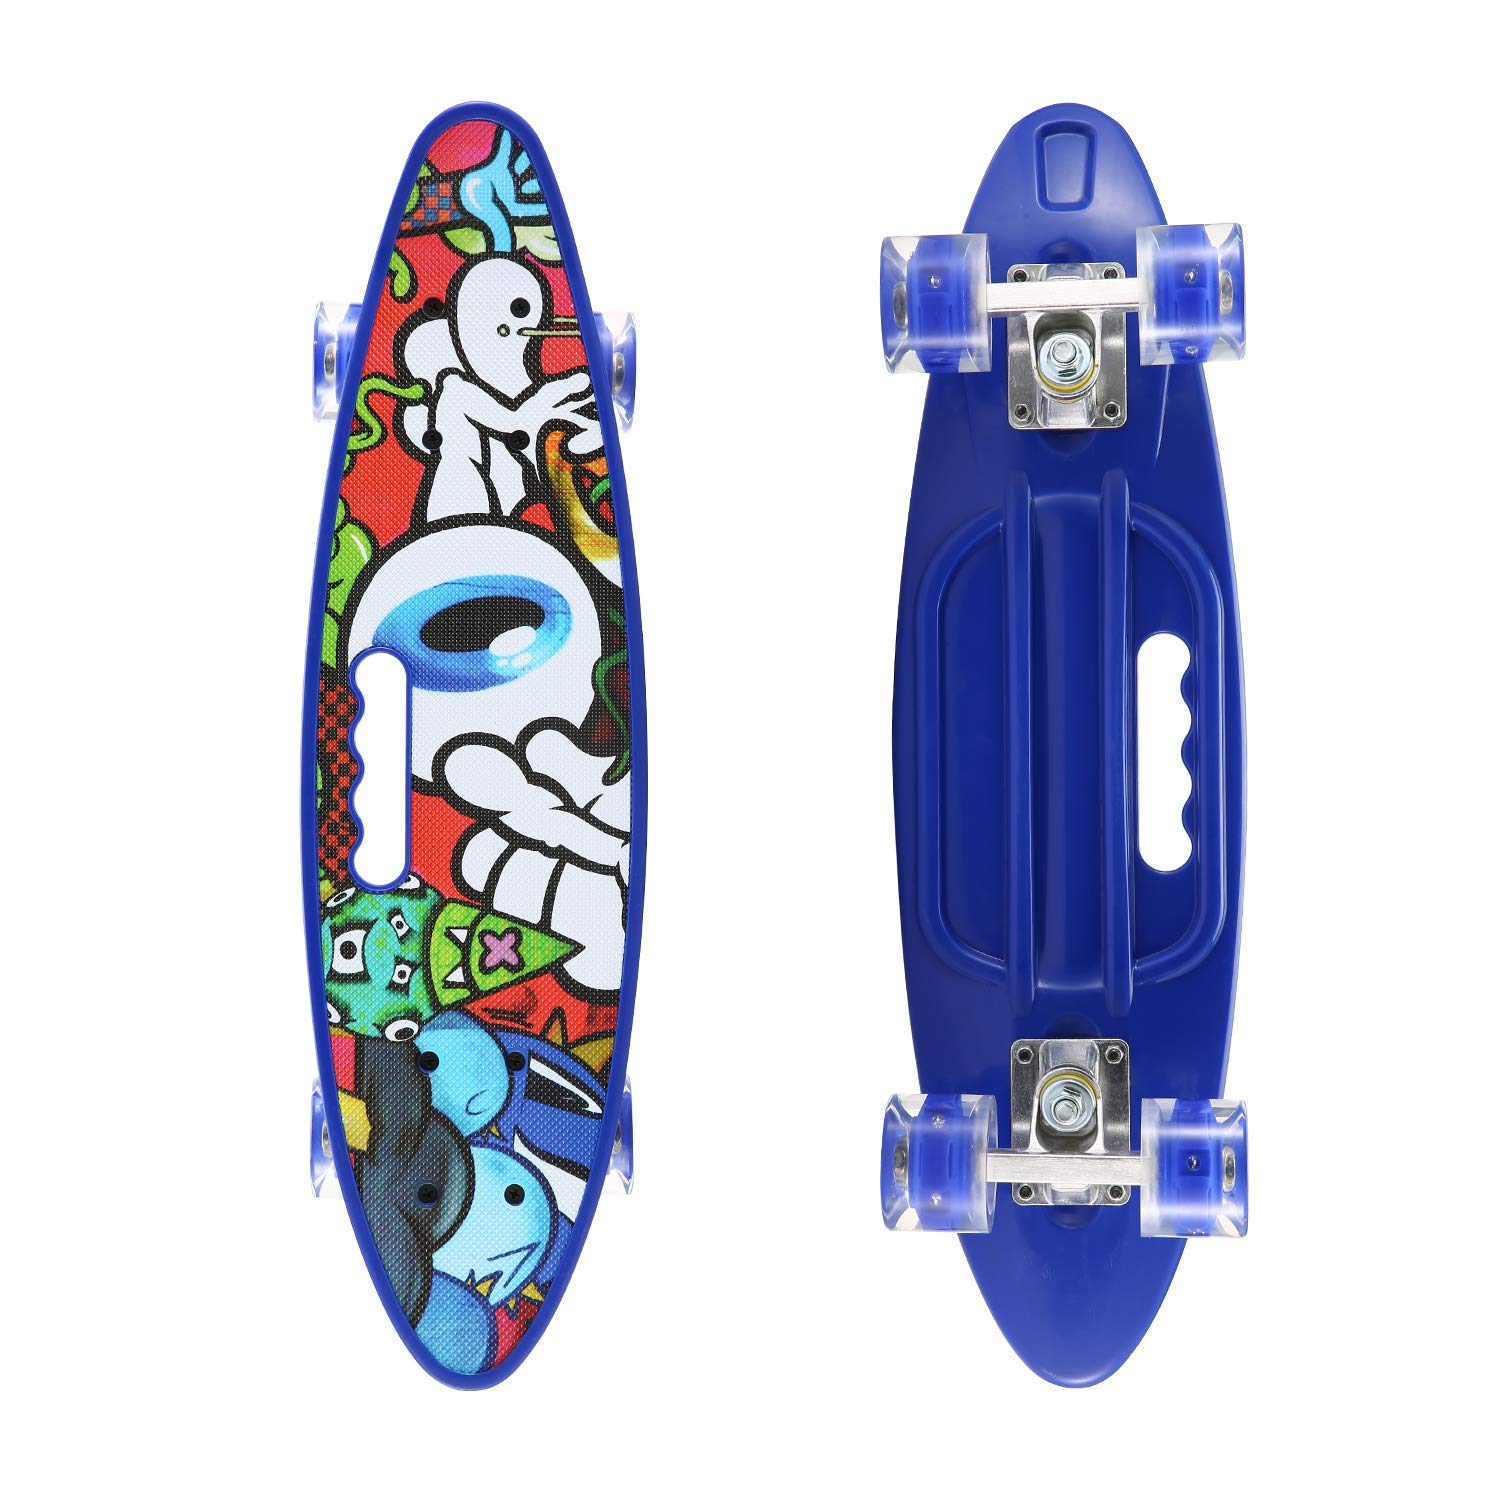 SANSIRP 23 Inches Plastic Skateboard, Complete Portable Mini Skateboards with Bendable Deck LED Light Up Wheels for Beginners Kids Adults